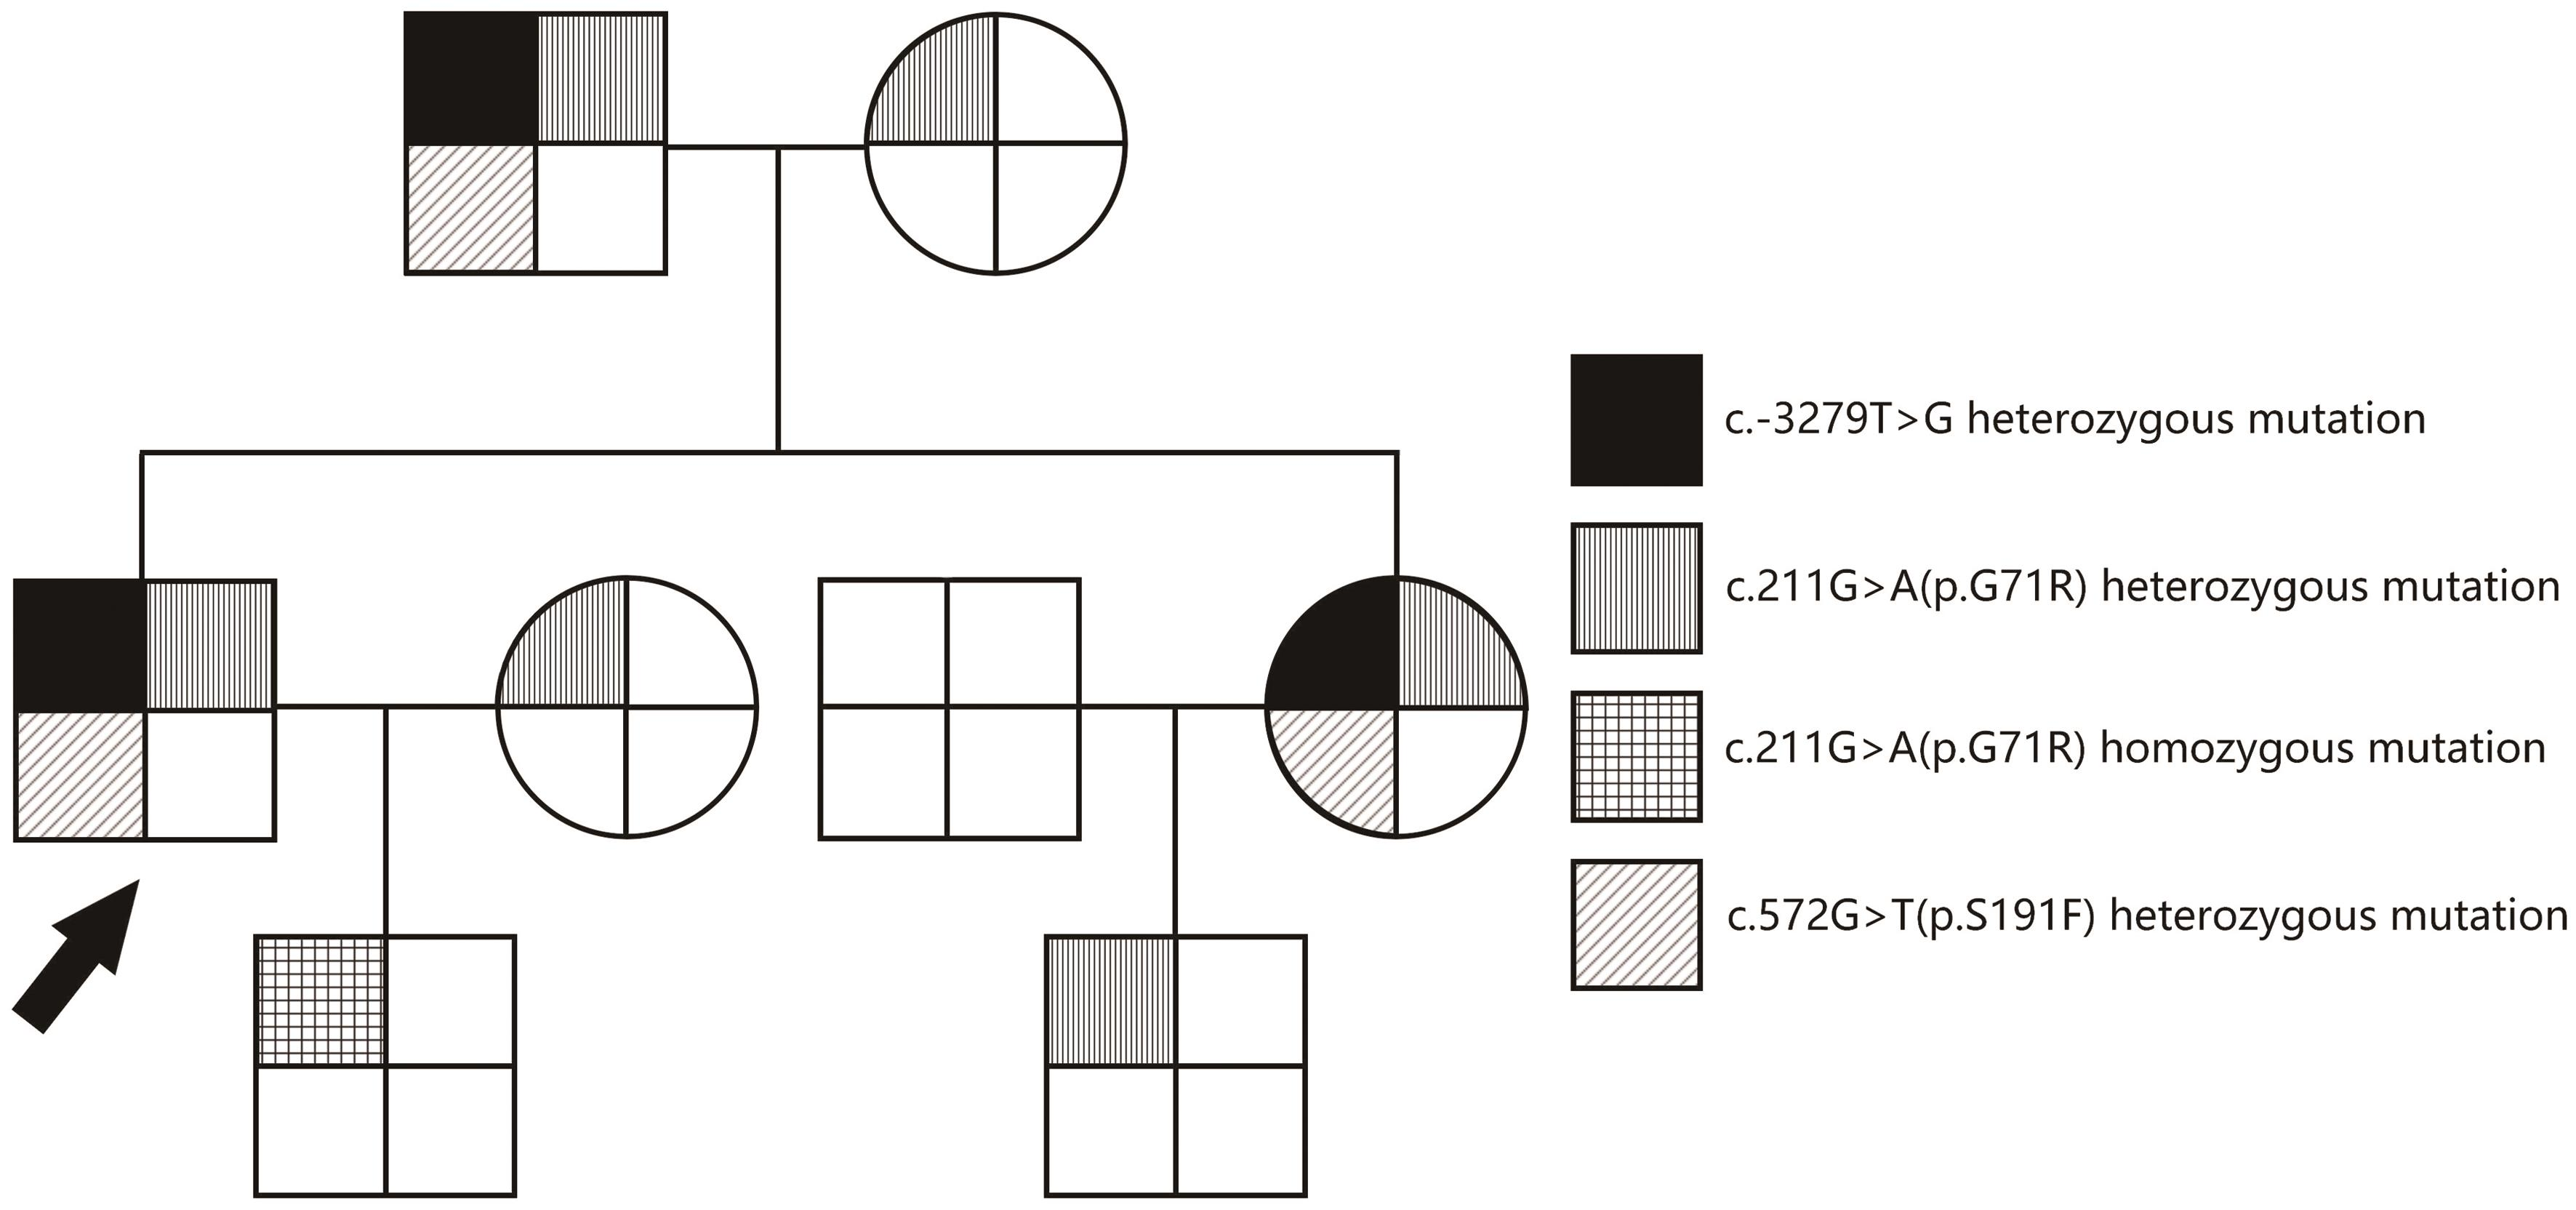 Family pedigree of patient 1.